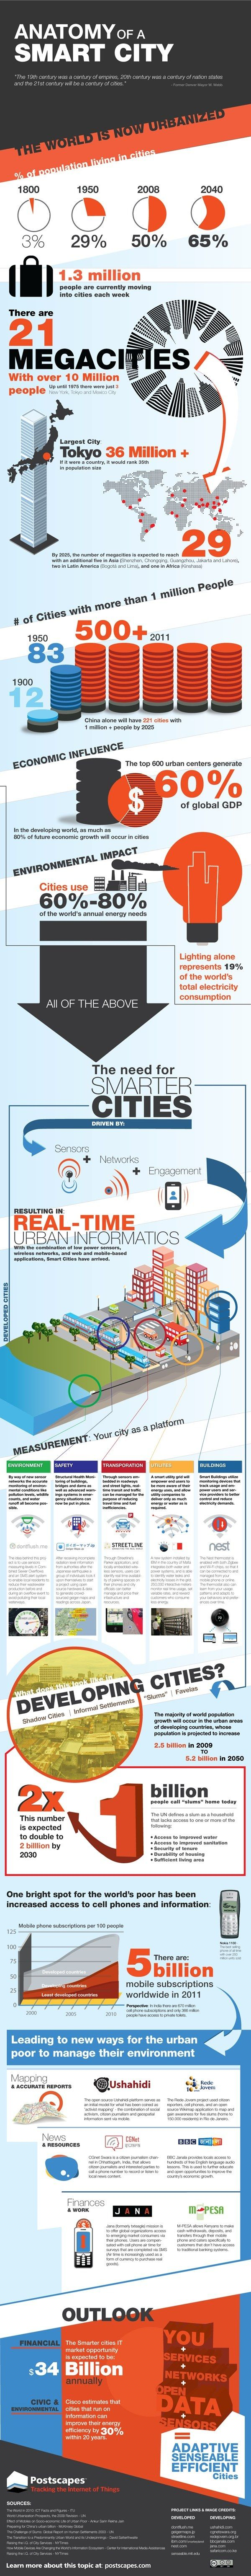 Anatomy of a Smart City! Did you know that 1.3 million people are moving to cities each week?! The need for smart cities is required to establish intelligent connected environments, how the smart city may take various forms in the developing worlds and what specific technologies are necessary to achieve such grand goals in practice.